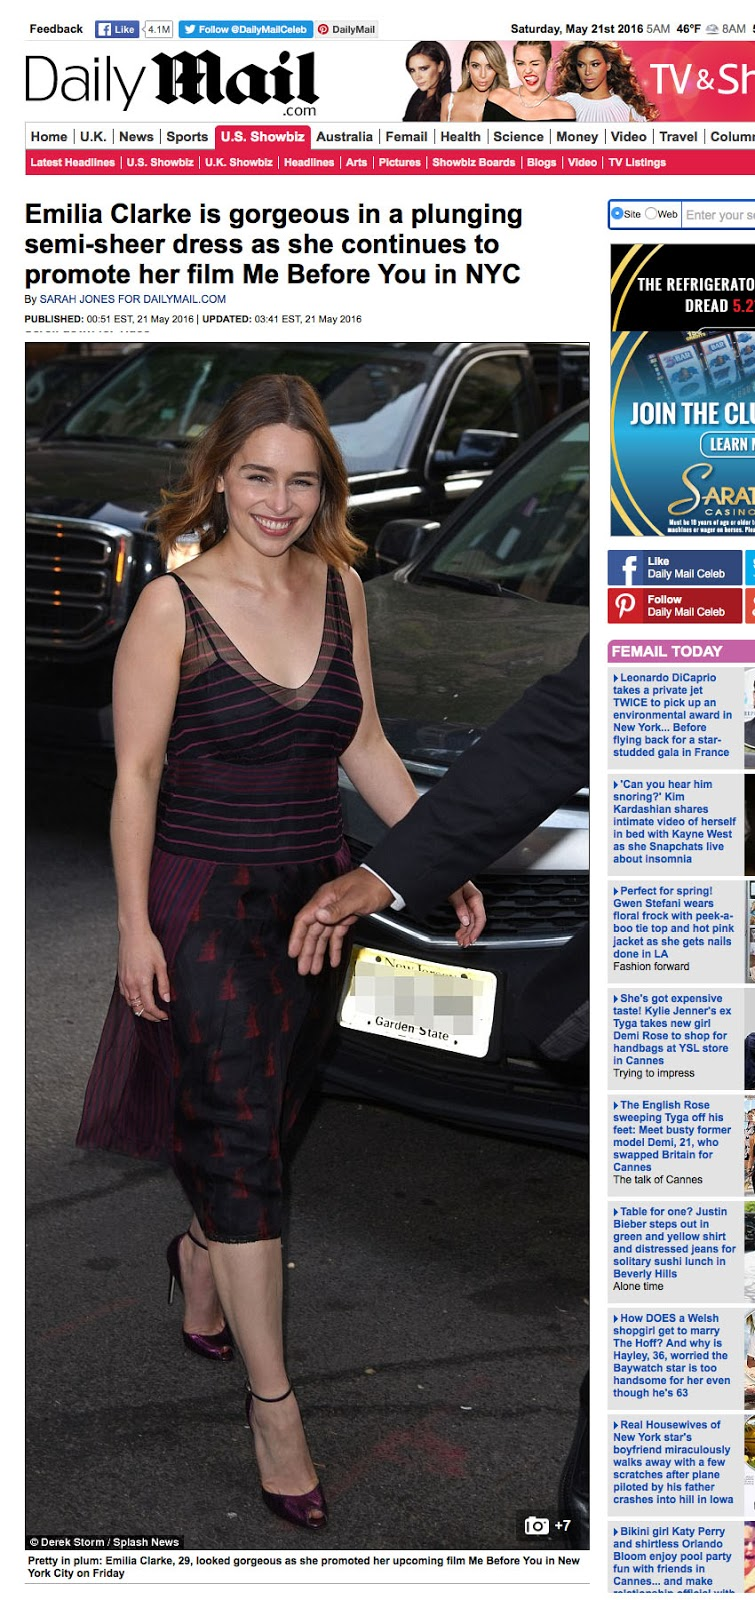 In the News: Emilia Clarke in the UK Daily Mail